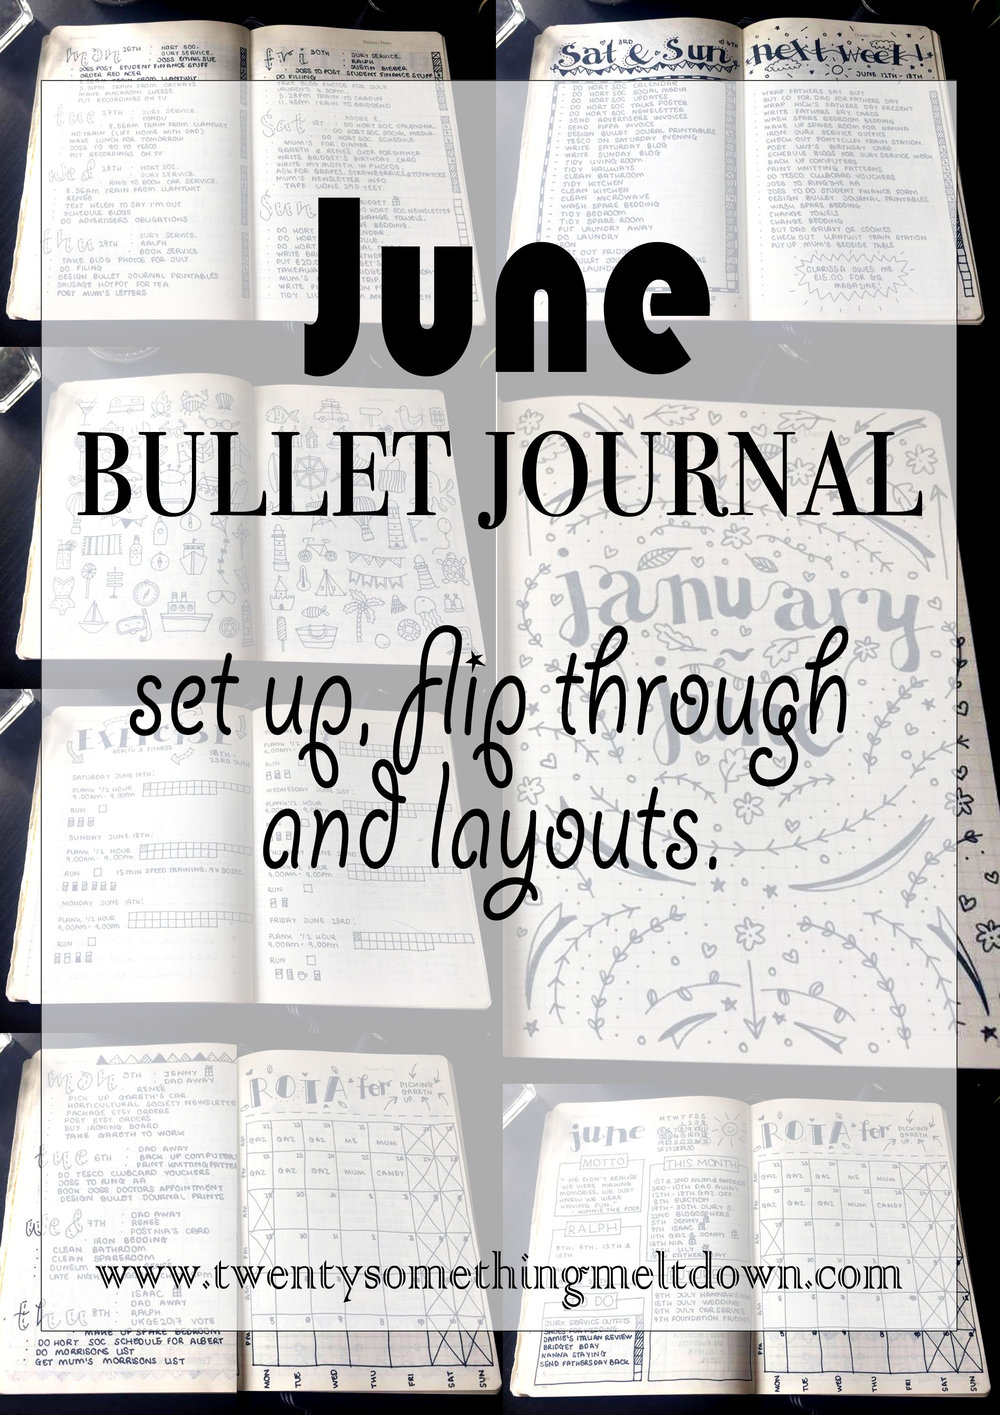 June 2017 Bullet Journal.